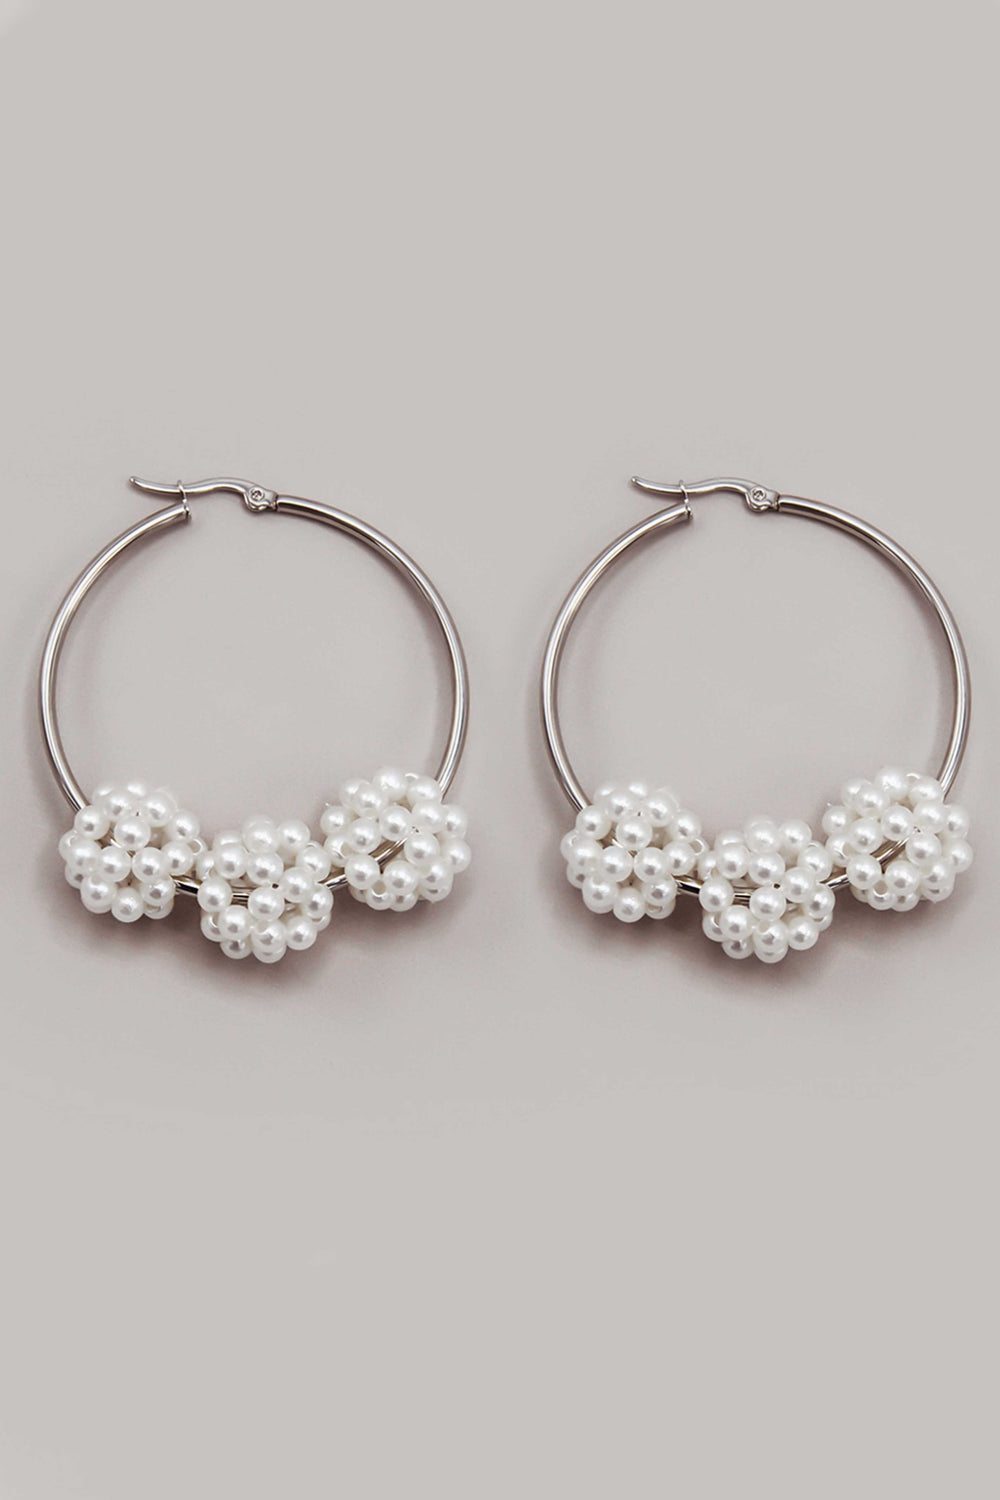 DAY DREAMING EARRINGS IN SILVER - Chic Le Frique